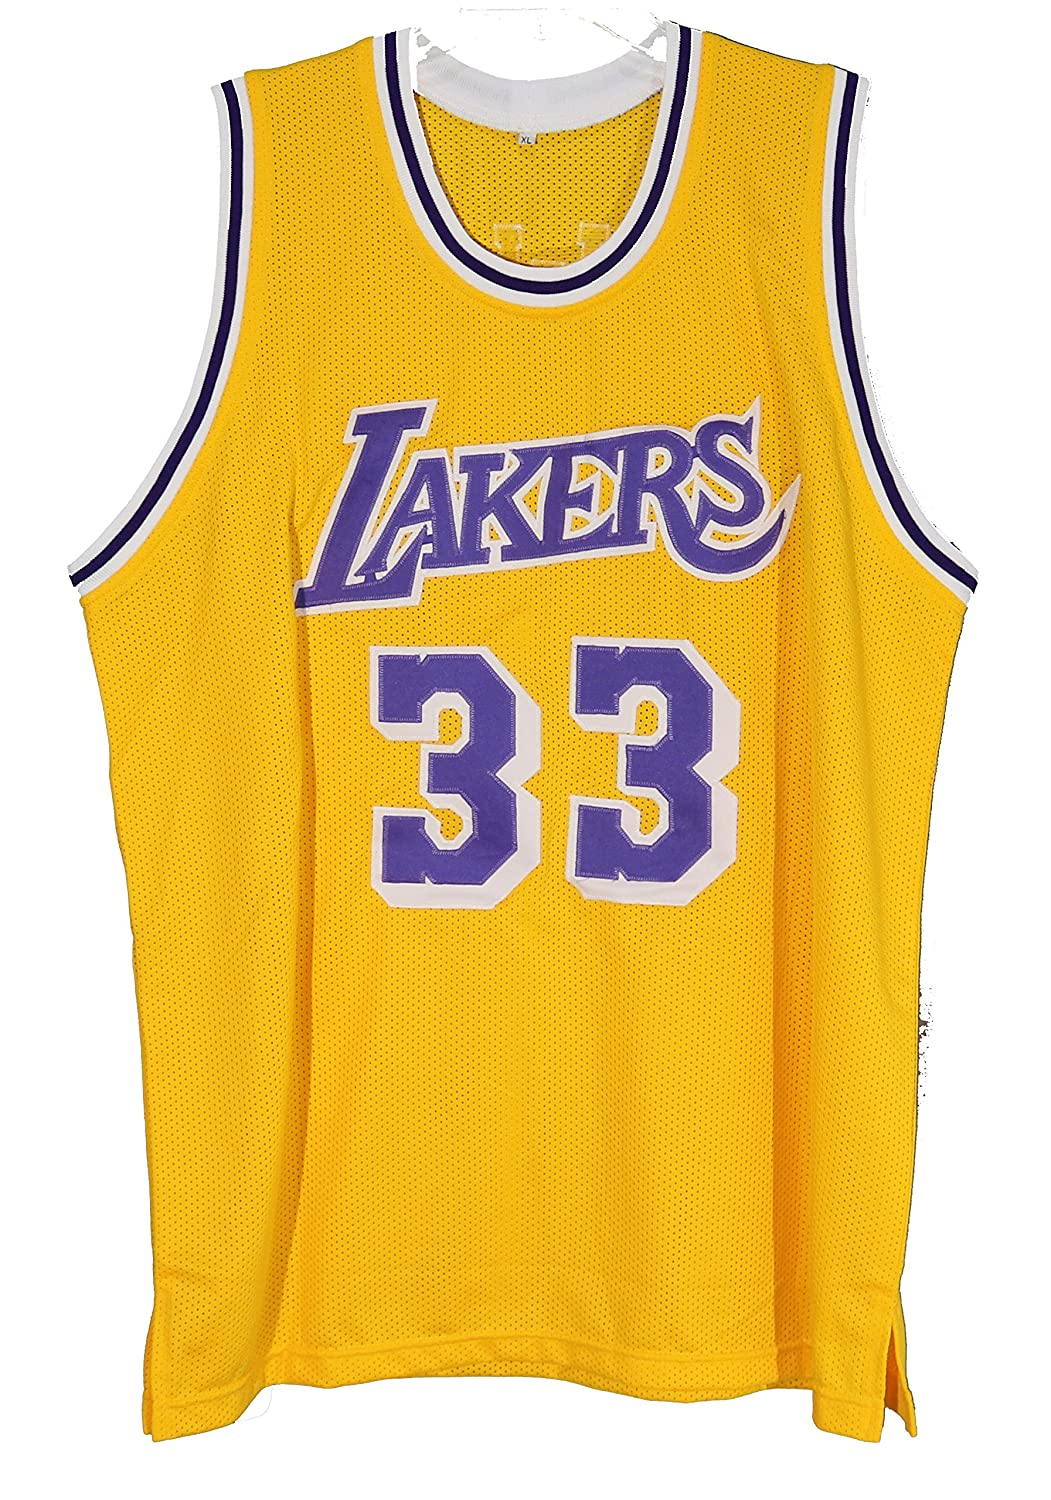 db509511c Kareem Abdul Jabbar Los Angeles Lakers Signed Autographed Yellow  33 Custom Jersey  at Amazon s Sports Collectibles Store